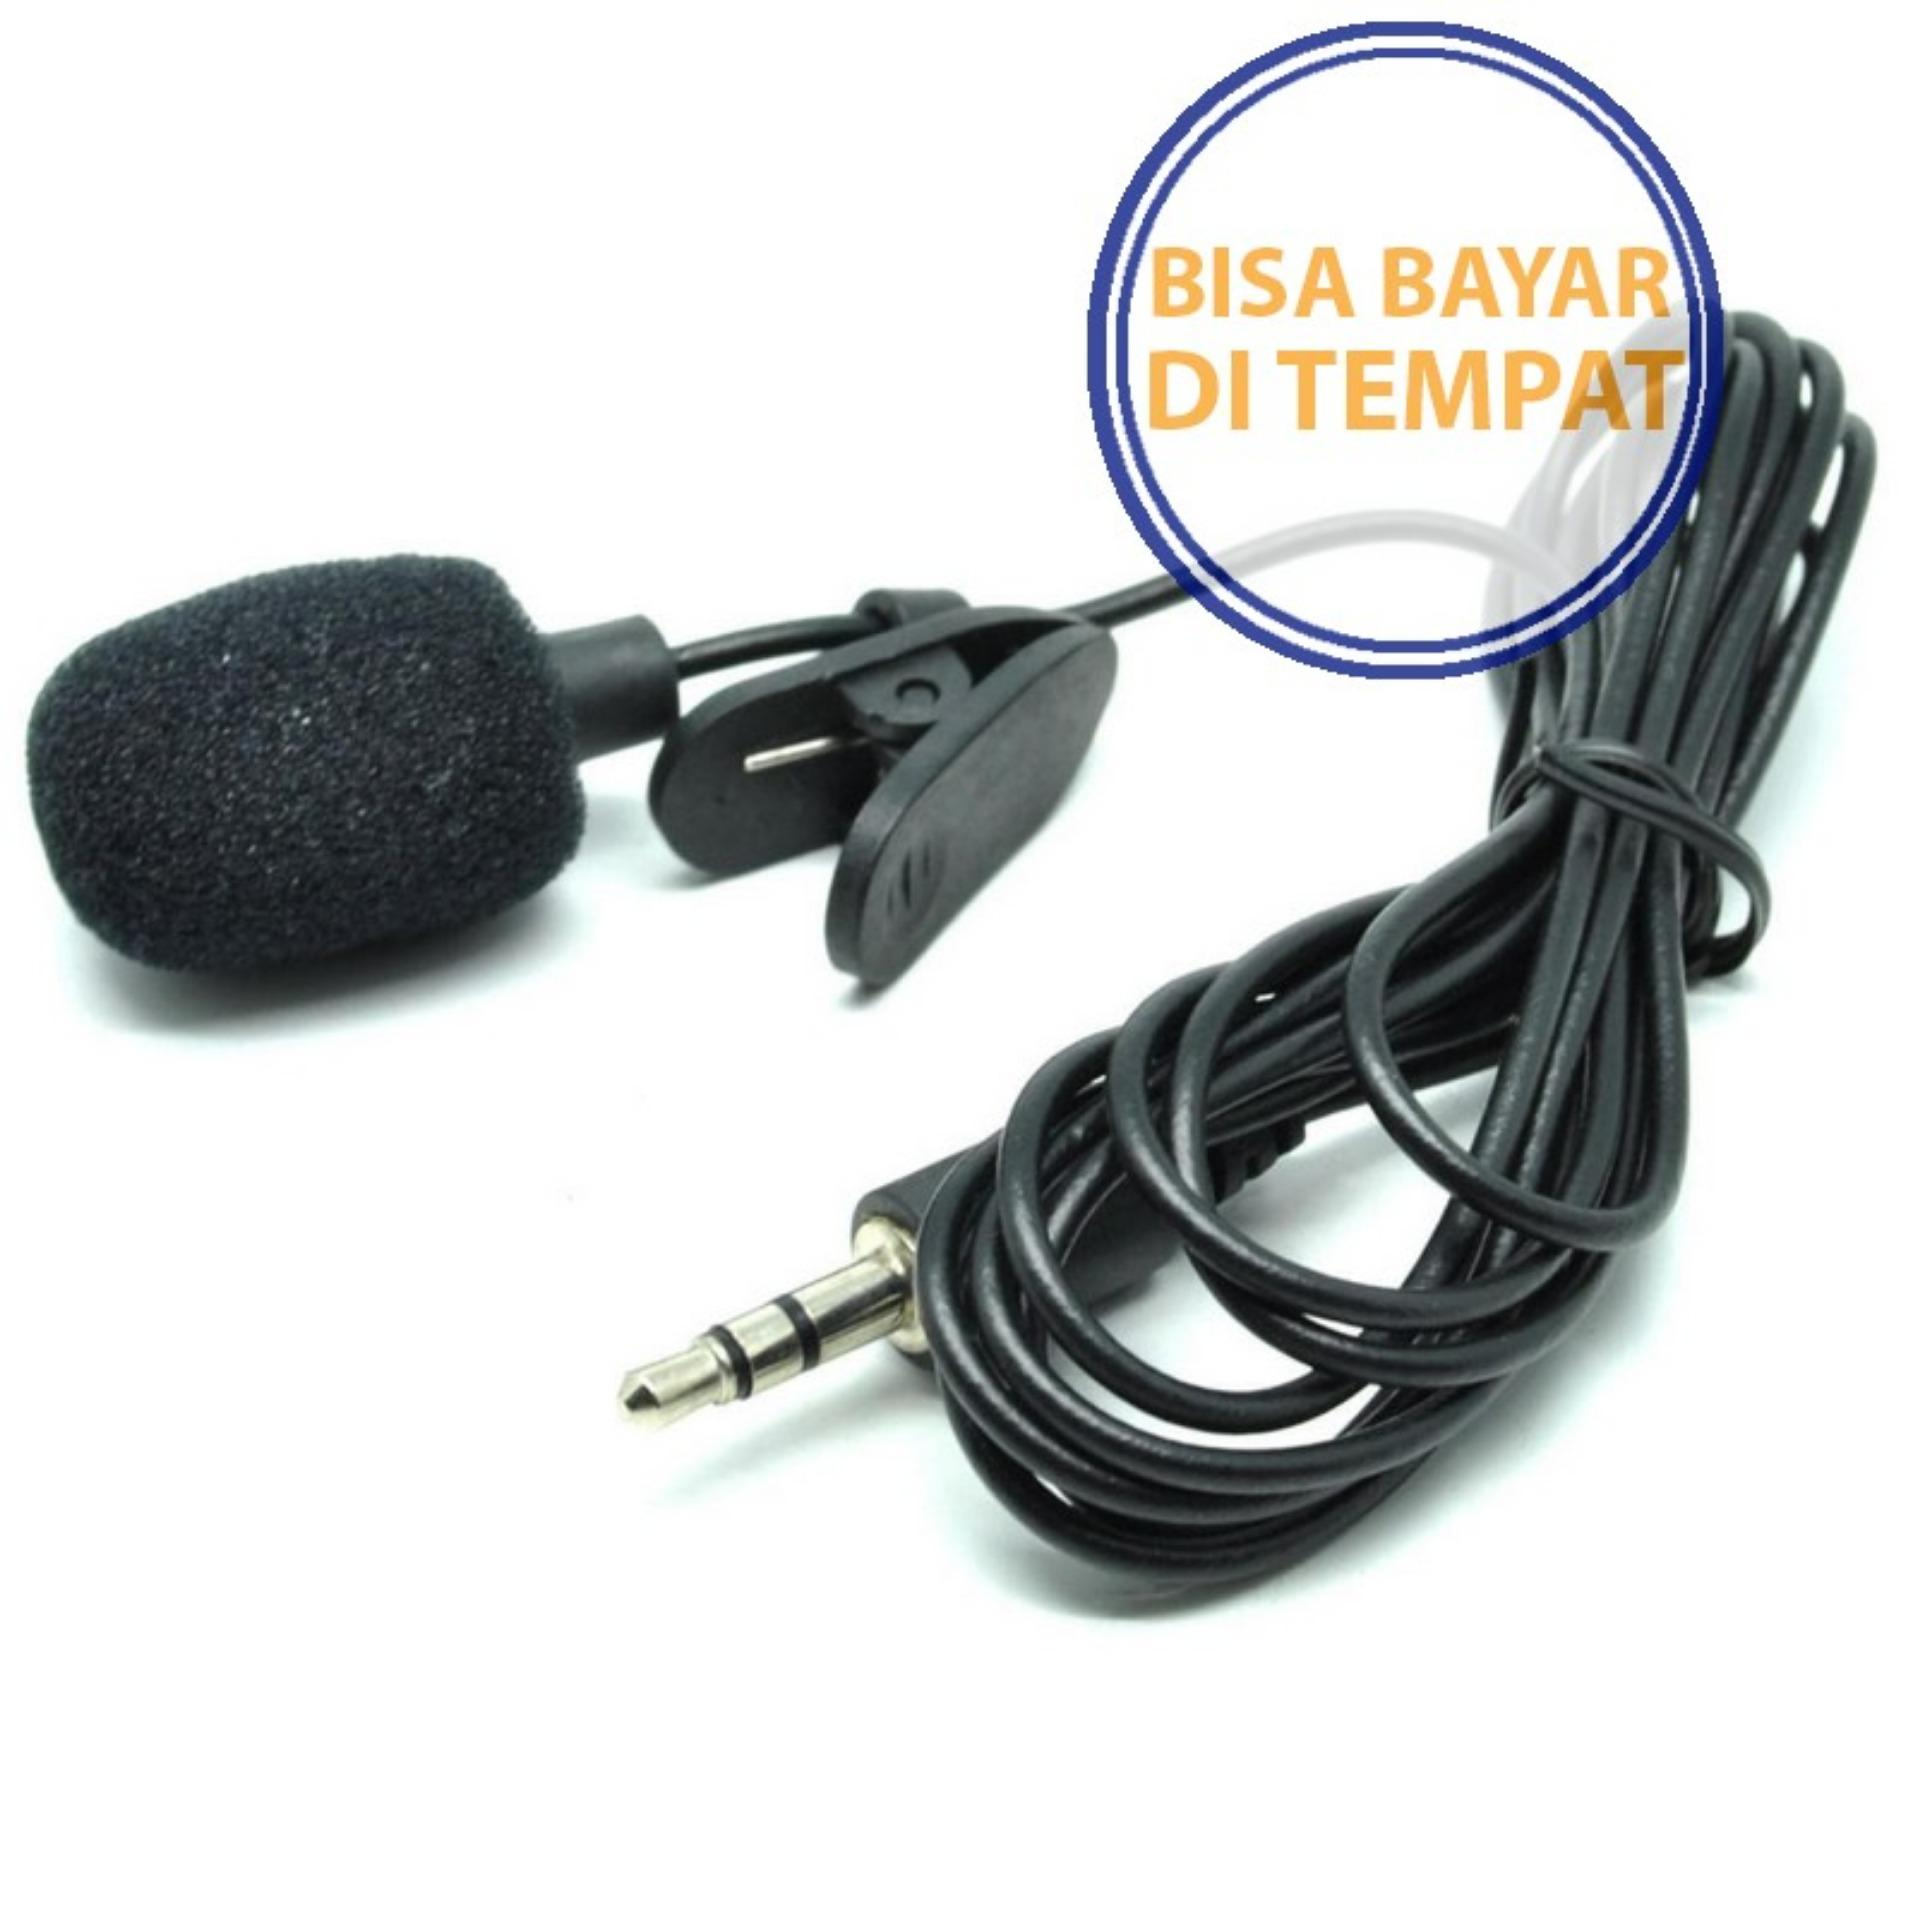 PROMO SAAT INI Microphone Clip Smartphone Laptop Tablet PC Youtube Vlog Smule VC 3.5m